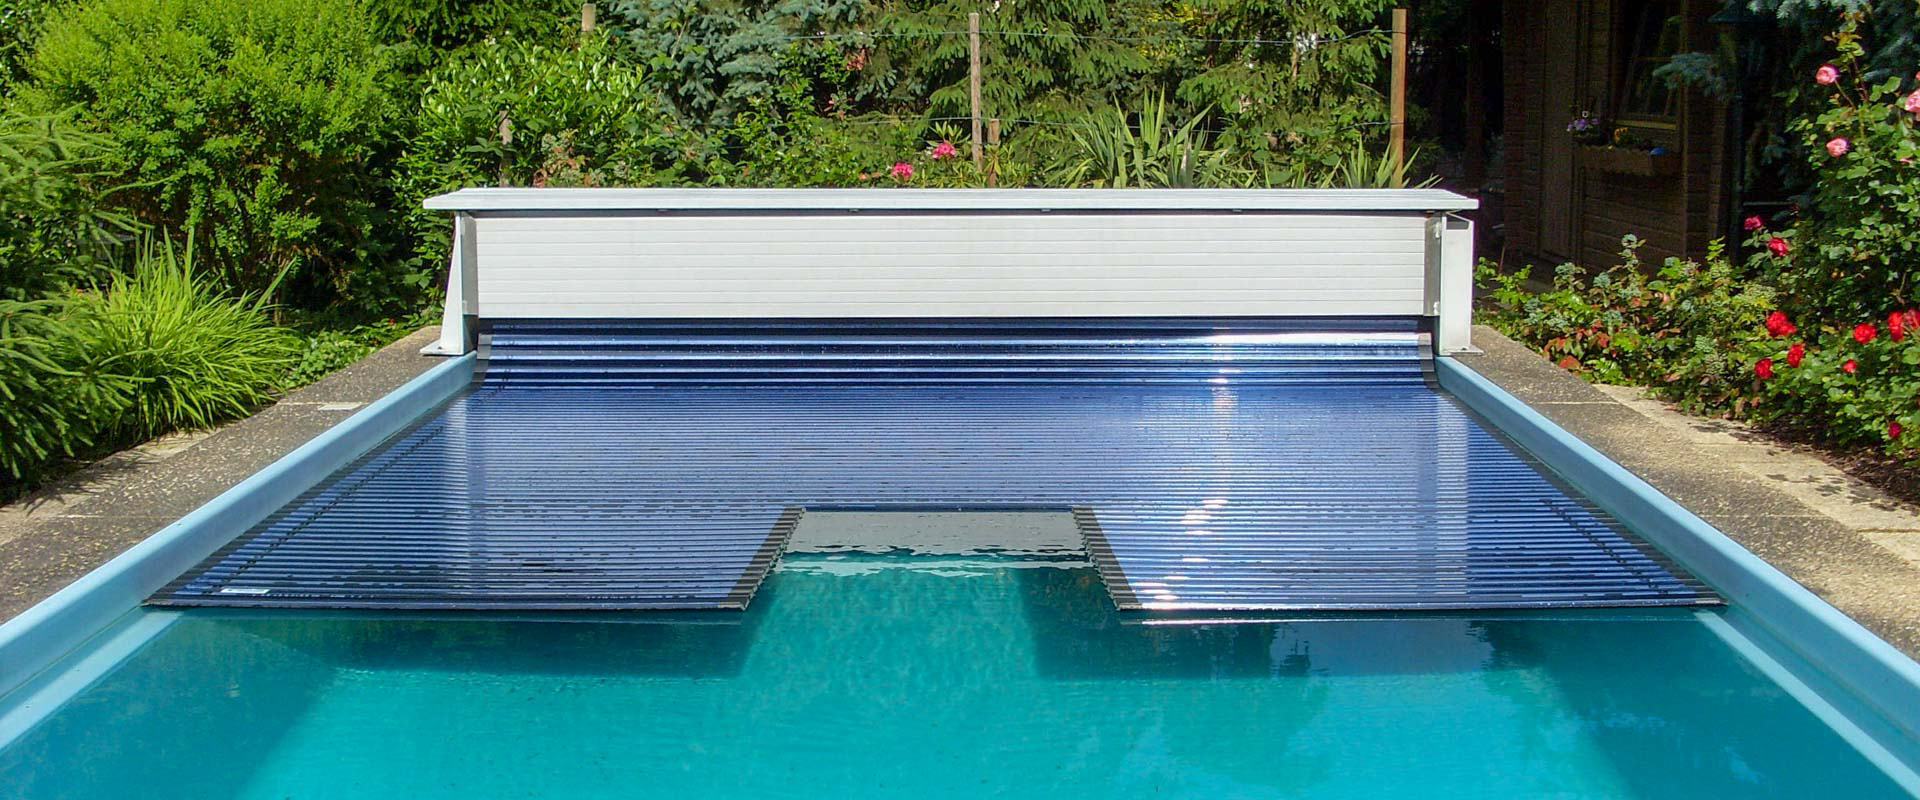 Poolabdeckung Jalousie Automatic Rigid Pool Cover System Type Compact Grando Gmbh En